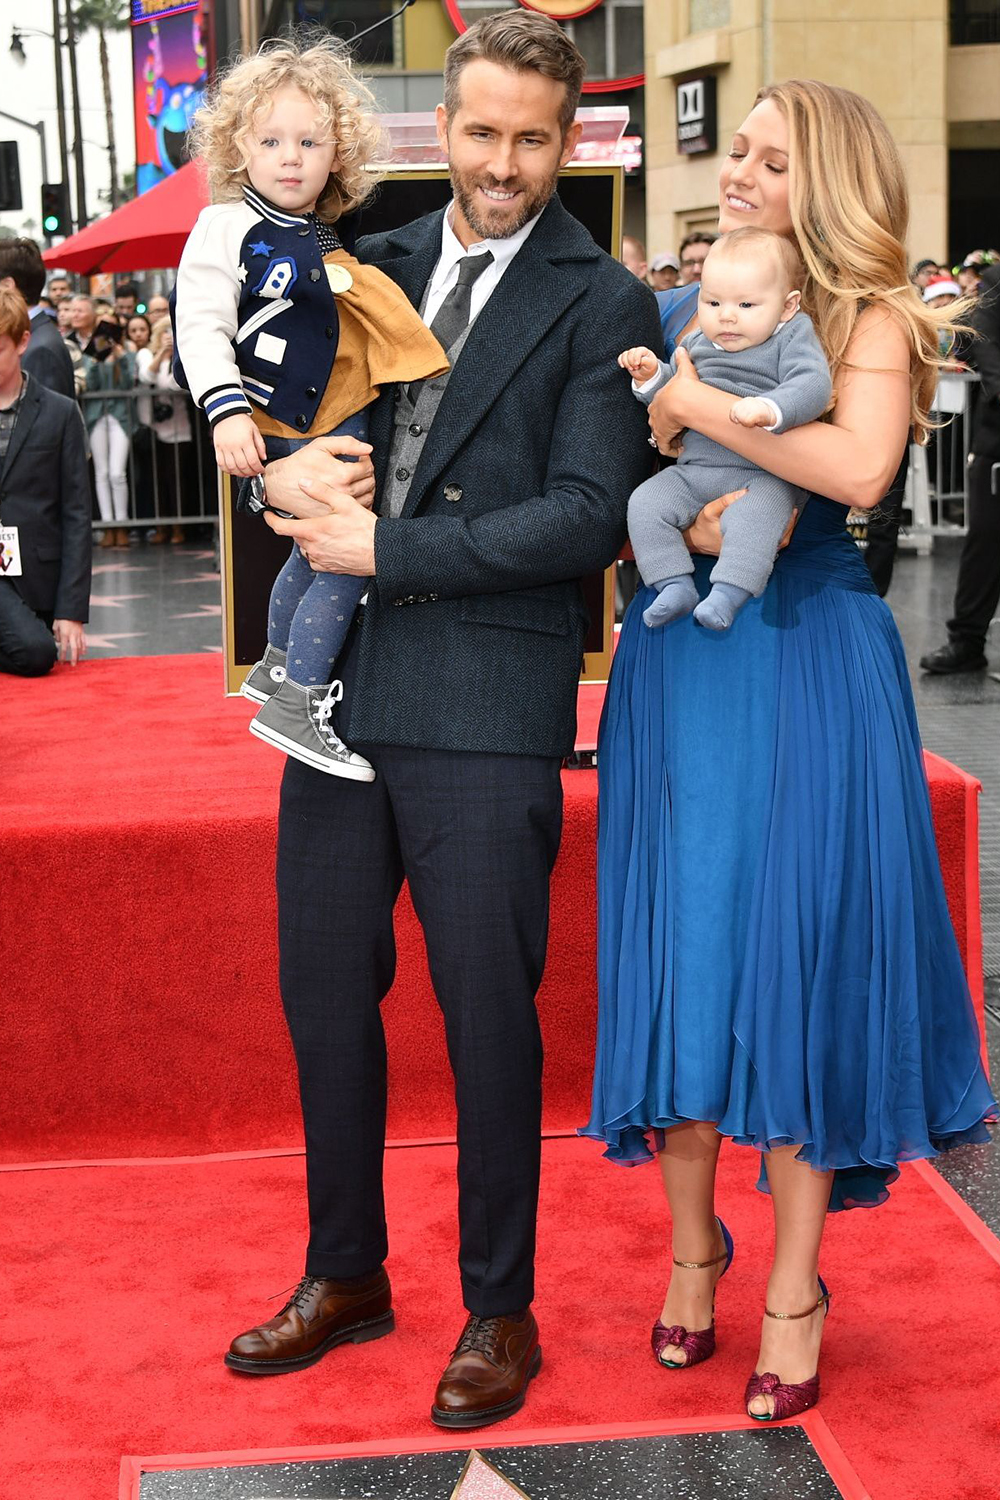 Ryan Reynolds and Blake Lively's children are perfection ...